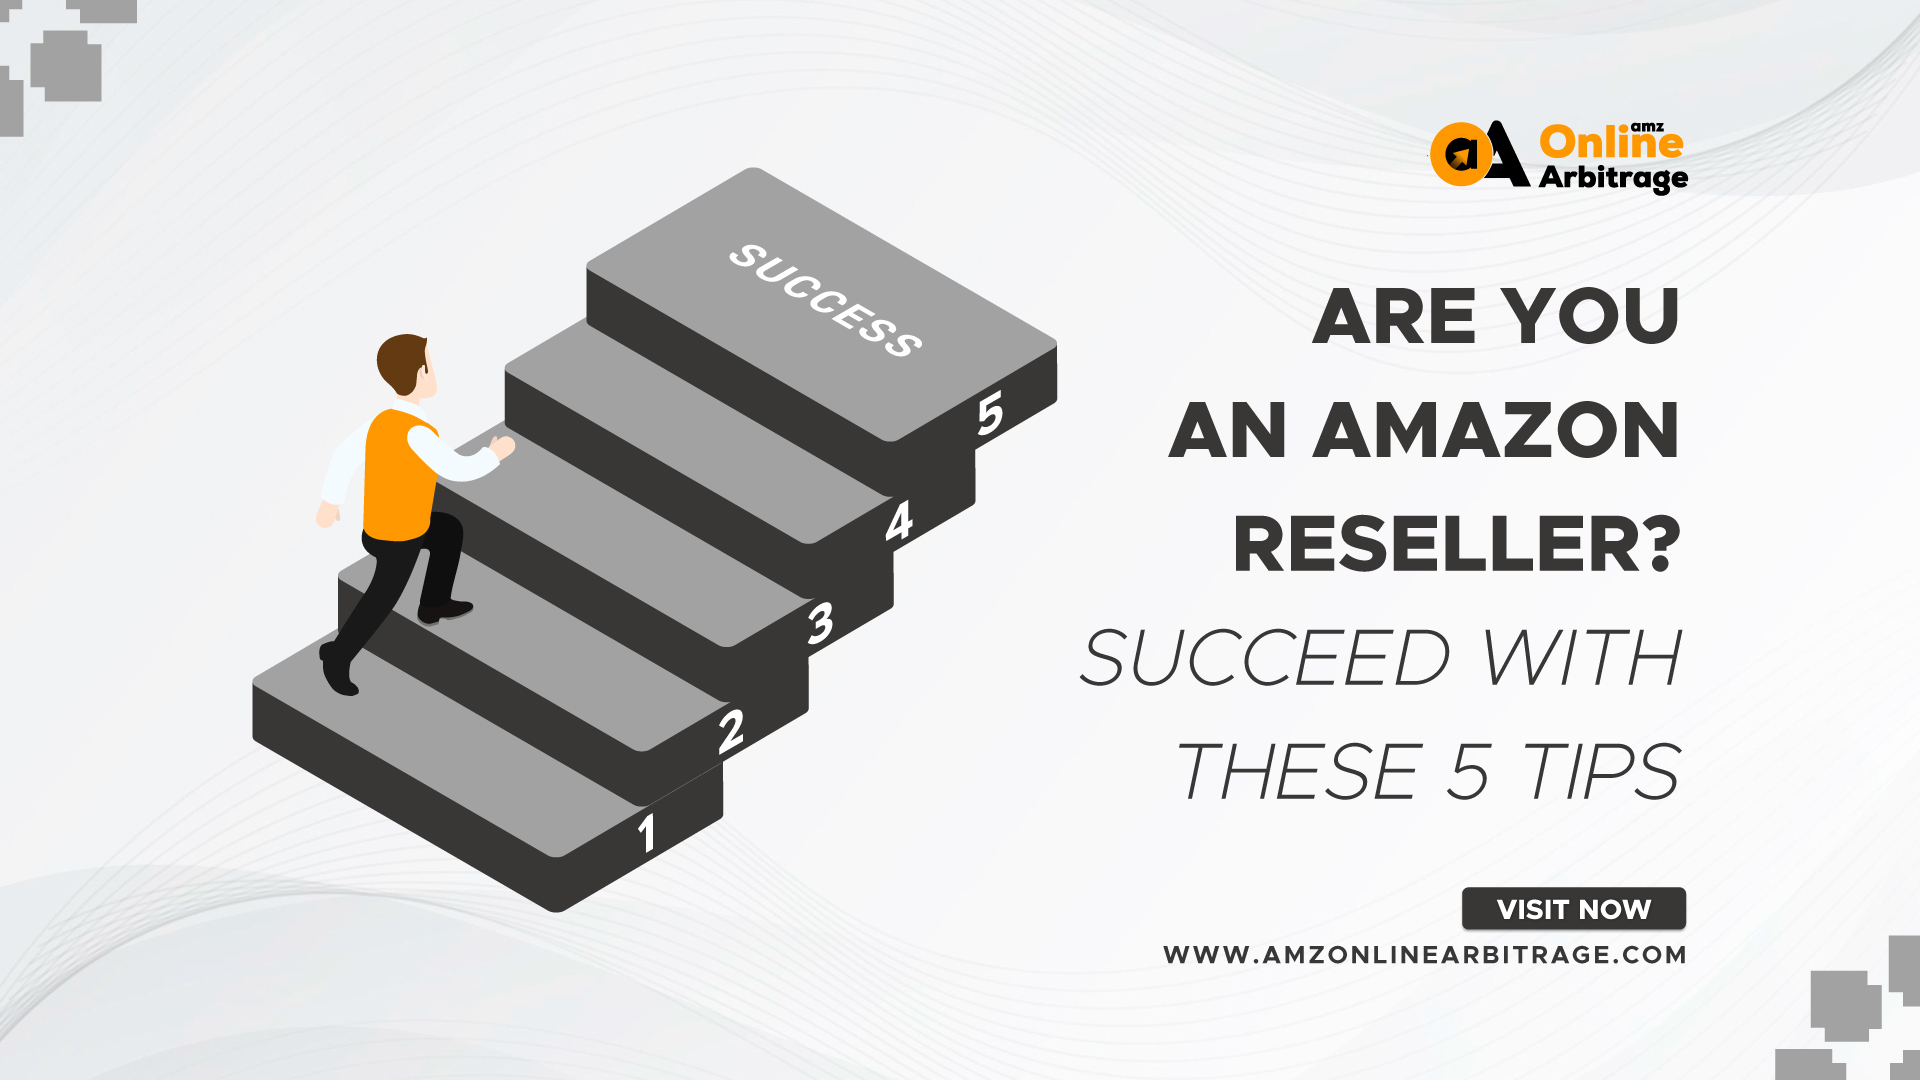 ARE YOU AN AMAZON RESELLER? SUCCEED WITH THESE 5 TIPS